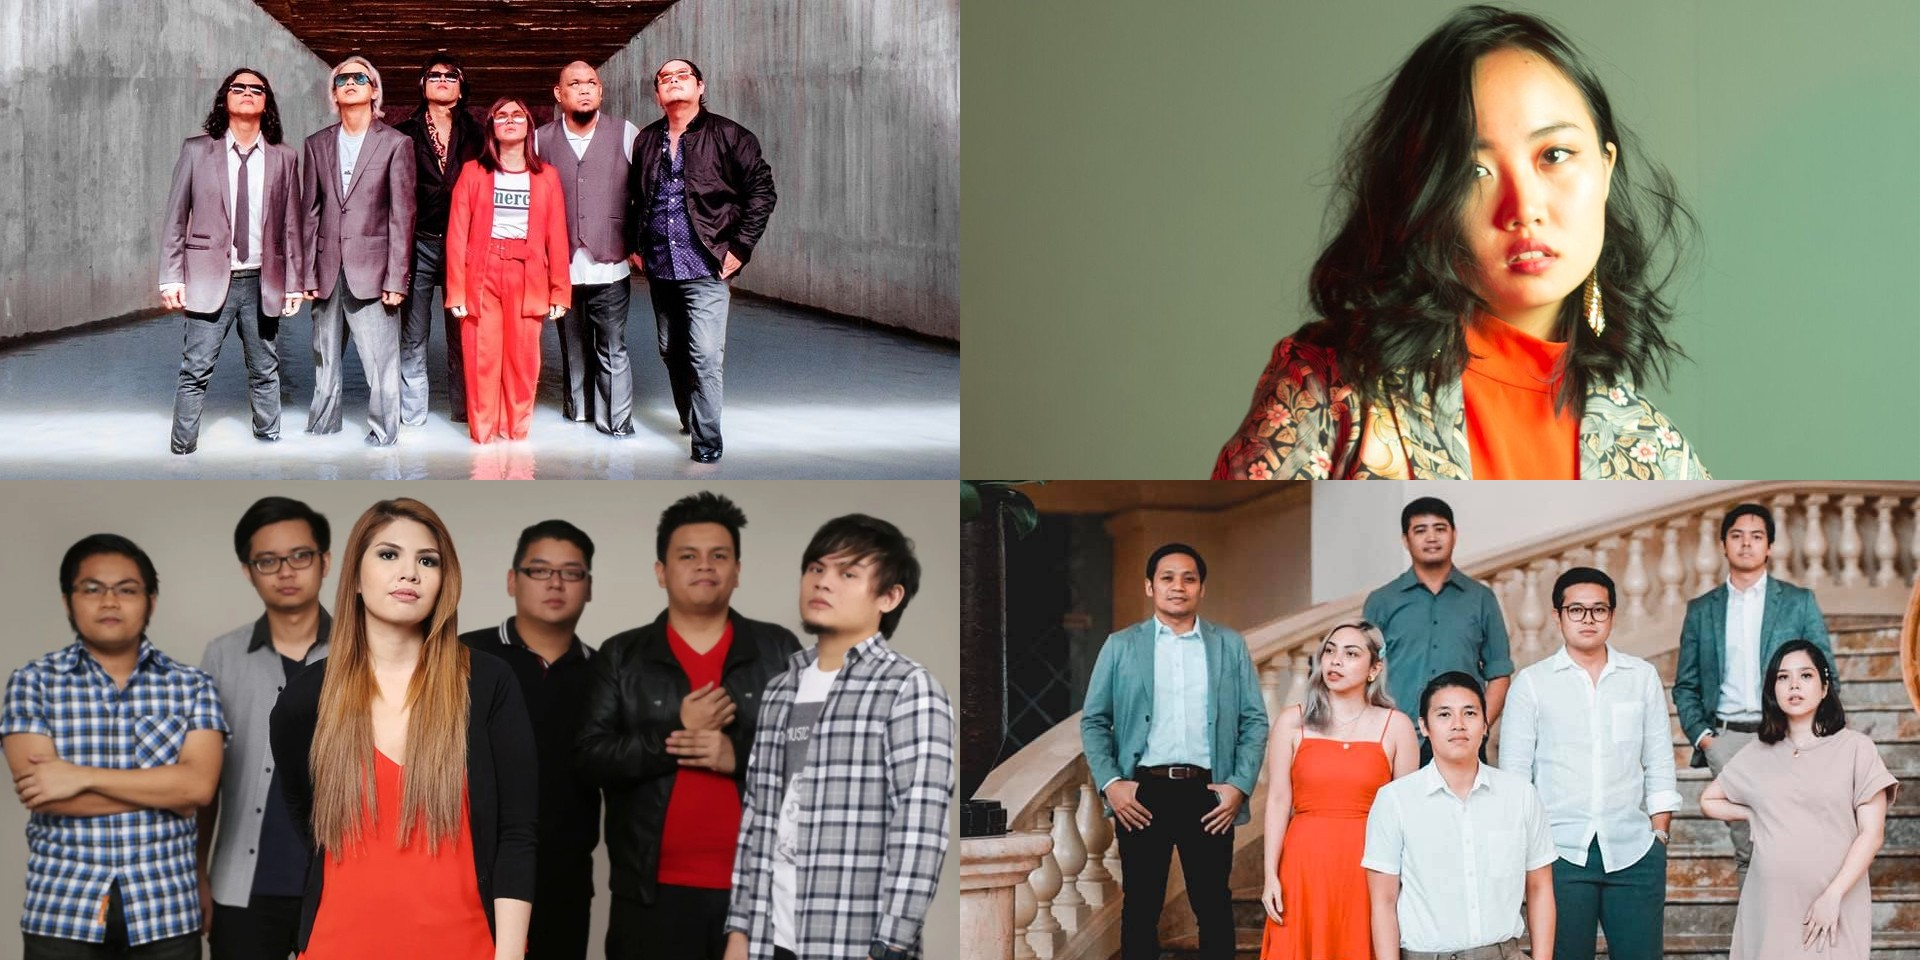 Apartel, Ena Mori, Autotelic, Cheats, and more join All Of the Noise 2019 lineup